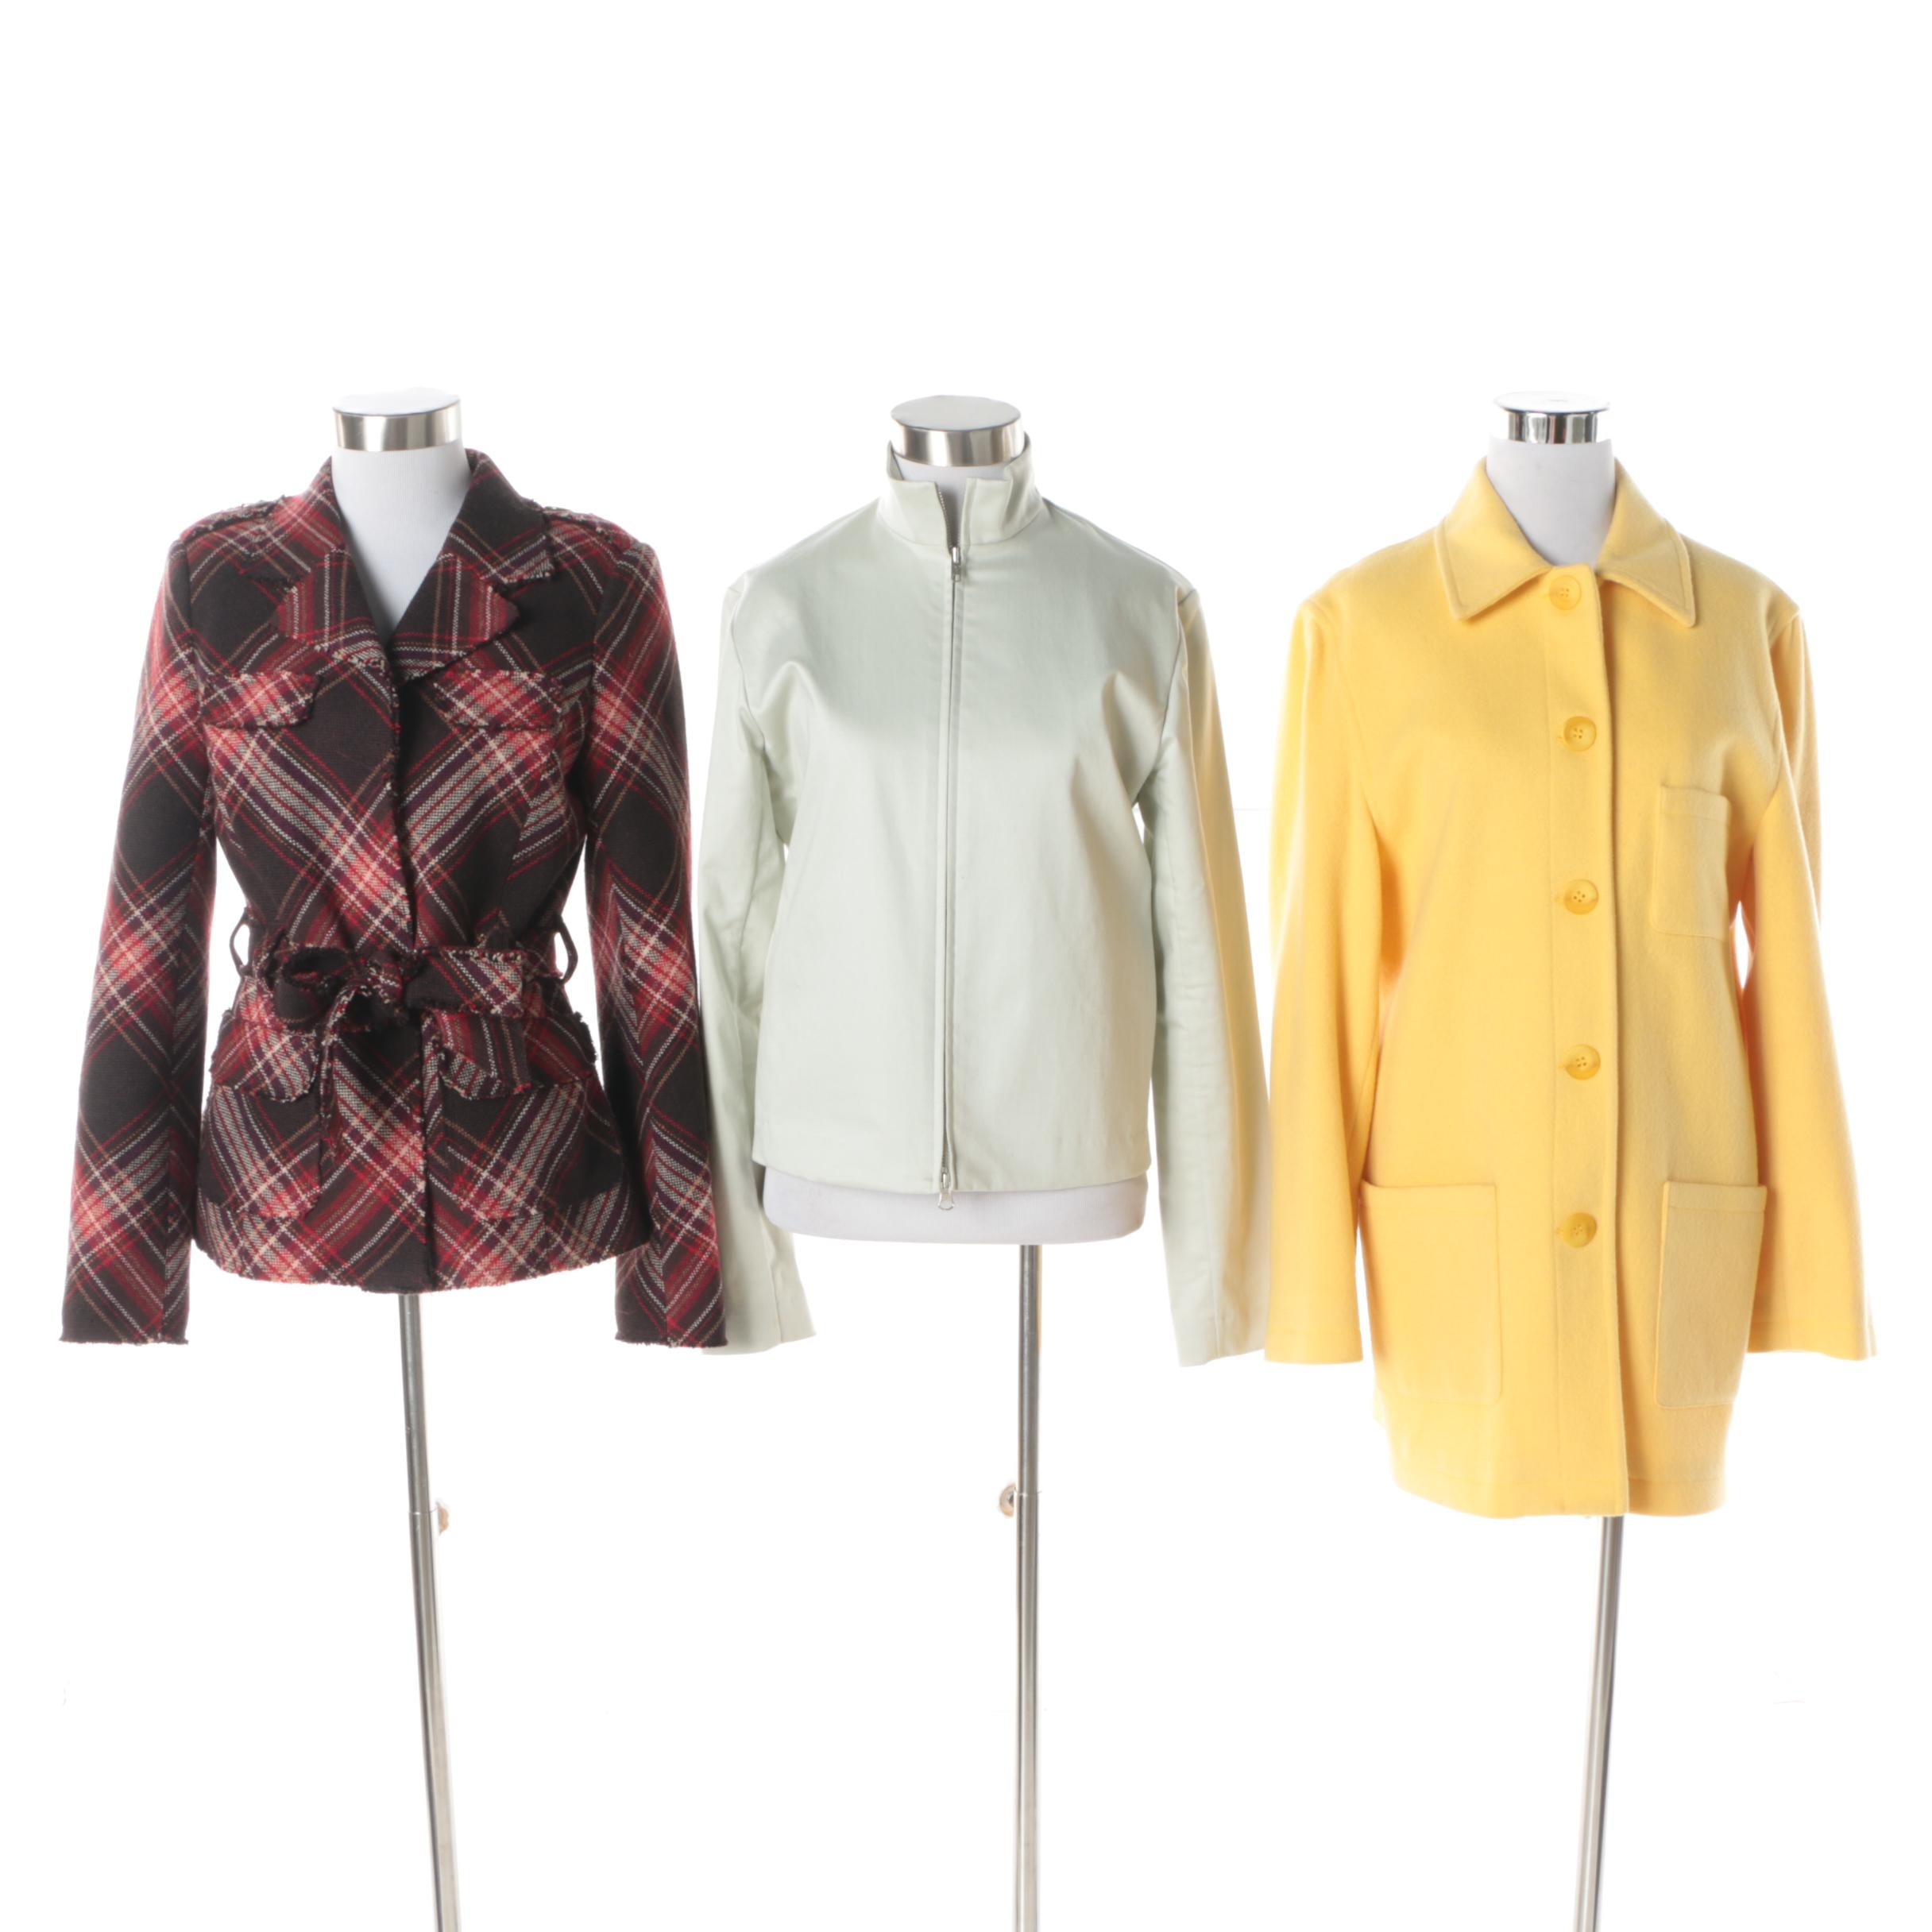 Women's Neiman Marcus, Fillmore and Isda & Co. Jackets